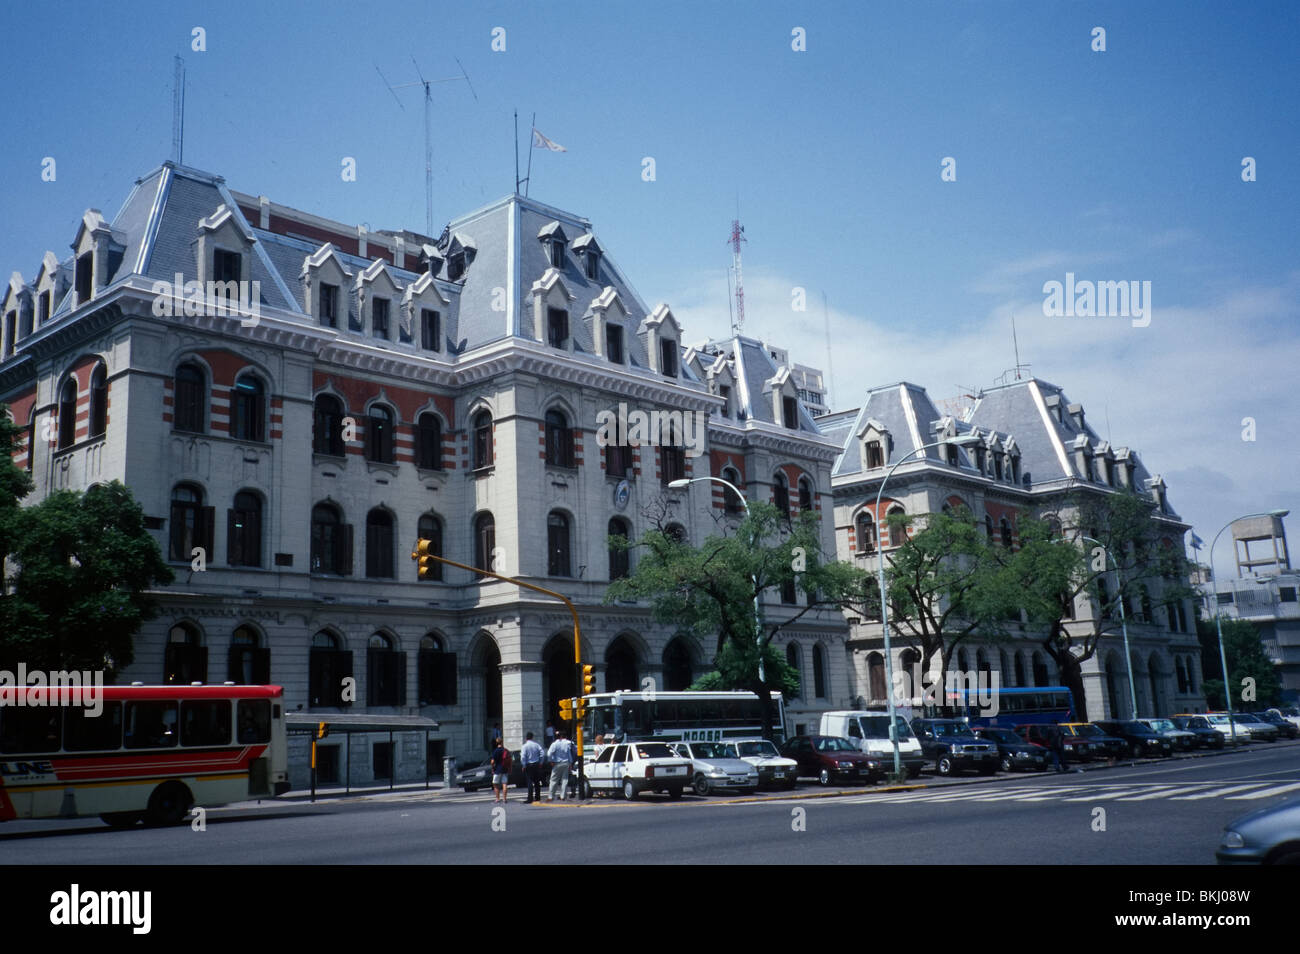 Buenos Aires, Argentina. Public Administration building in eclectic style. Stock Photo